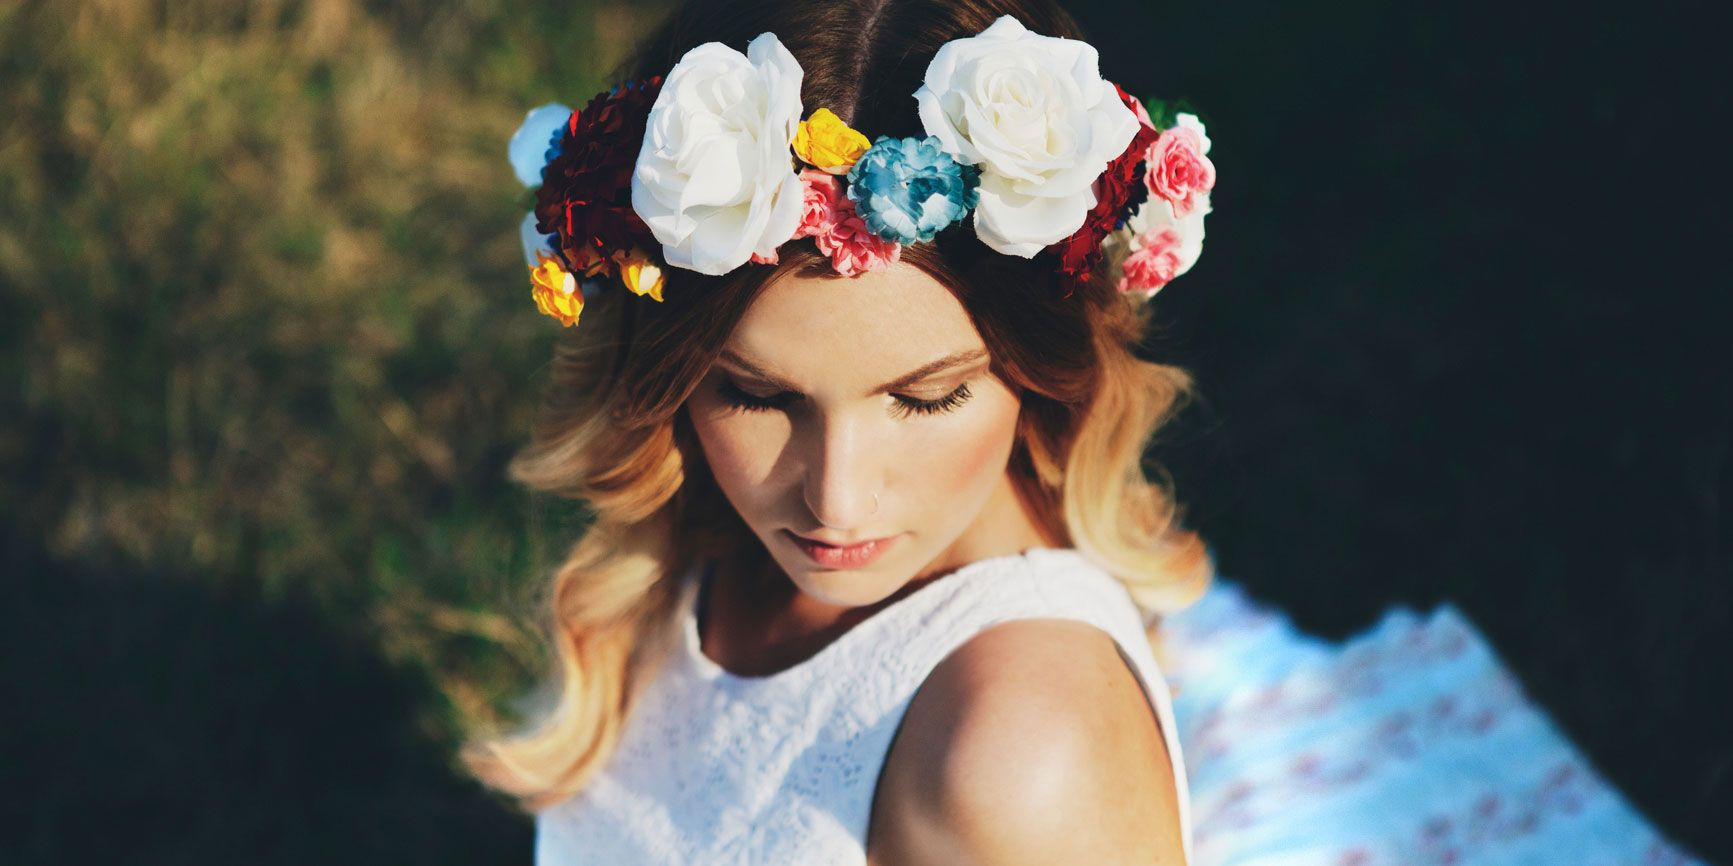 How To Make An Easy Diy Flower Crown Step By Step Flower Crown